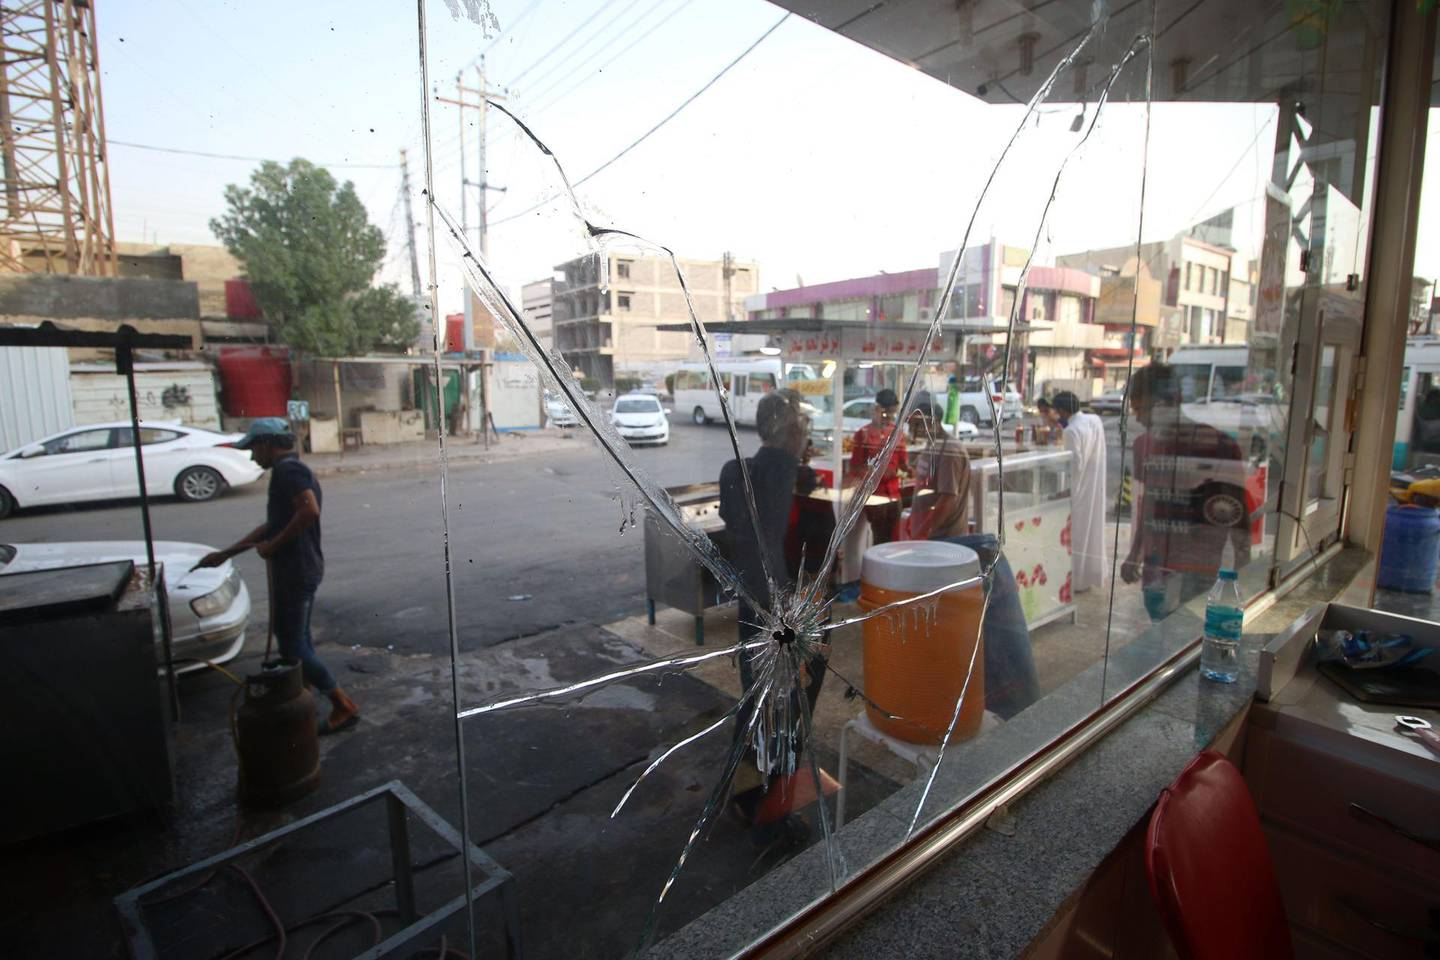 TOPSHOT - Iraqi vendors serving clients are seen through a broken window of a restaurant in a street in the southern Iraqi city of Basra on September 9, 2018. - After several nights of deadly protests, calm returned to the southern Iraqi city of Basra today, even as residents stuck to their demands that Baghdad no longer neglect their region. (Photo by Haidar MOHAMMED ALI / AFP)